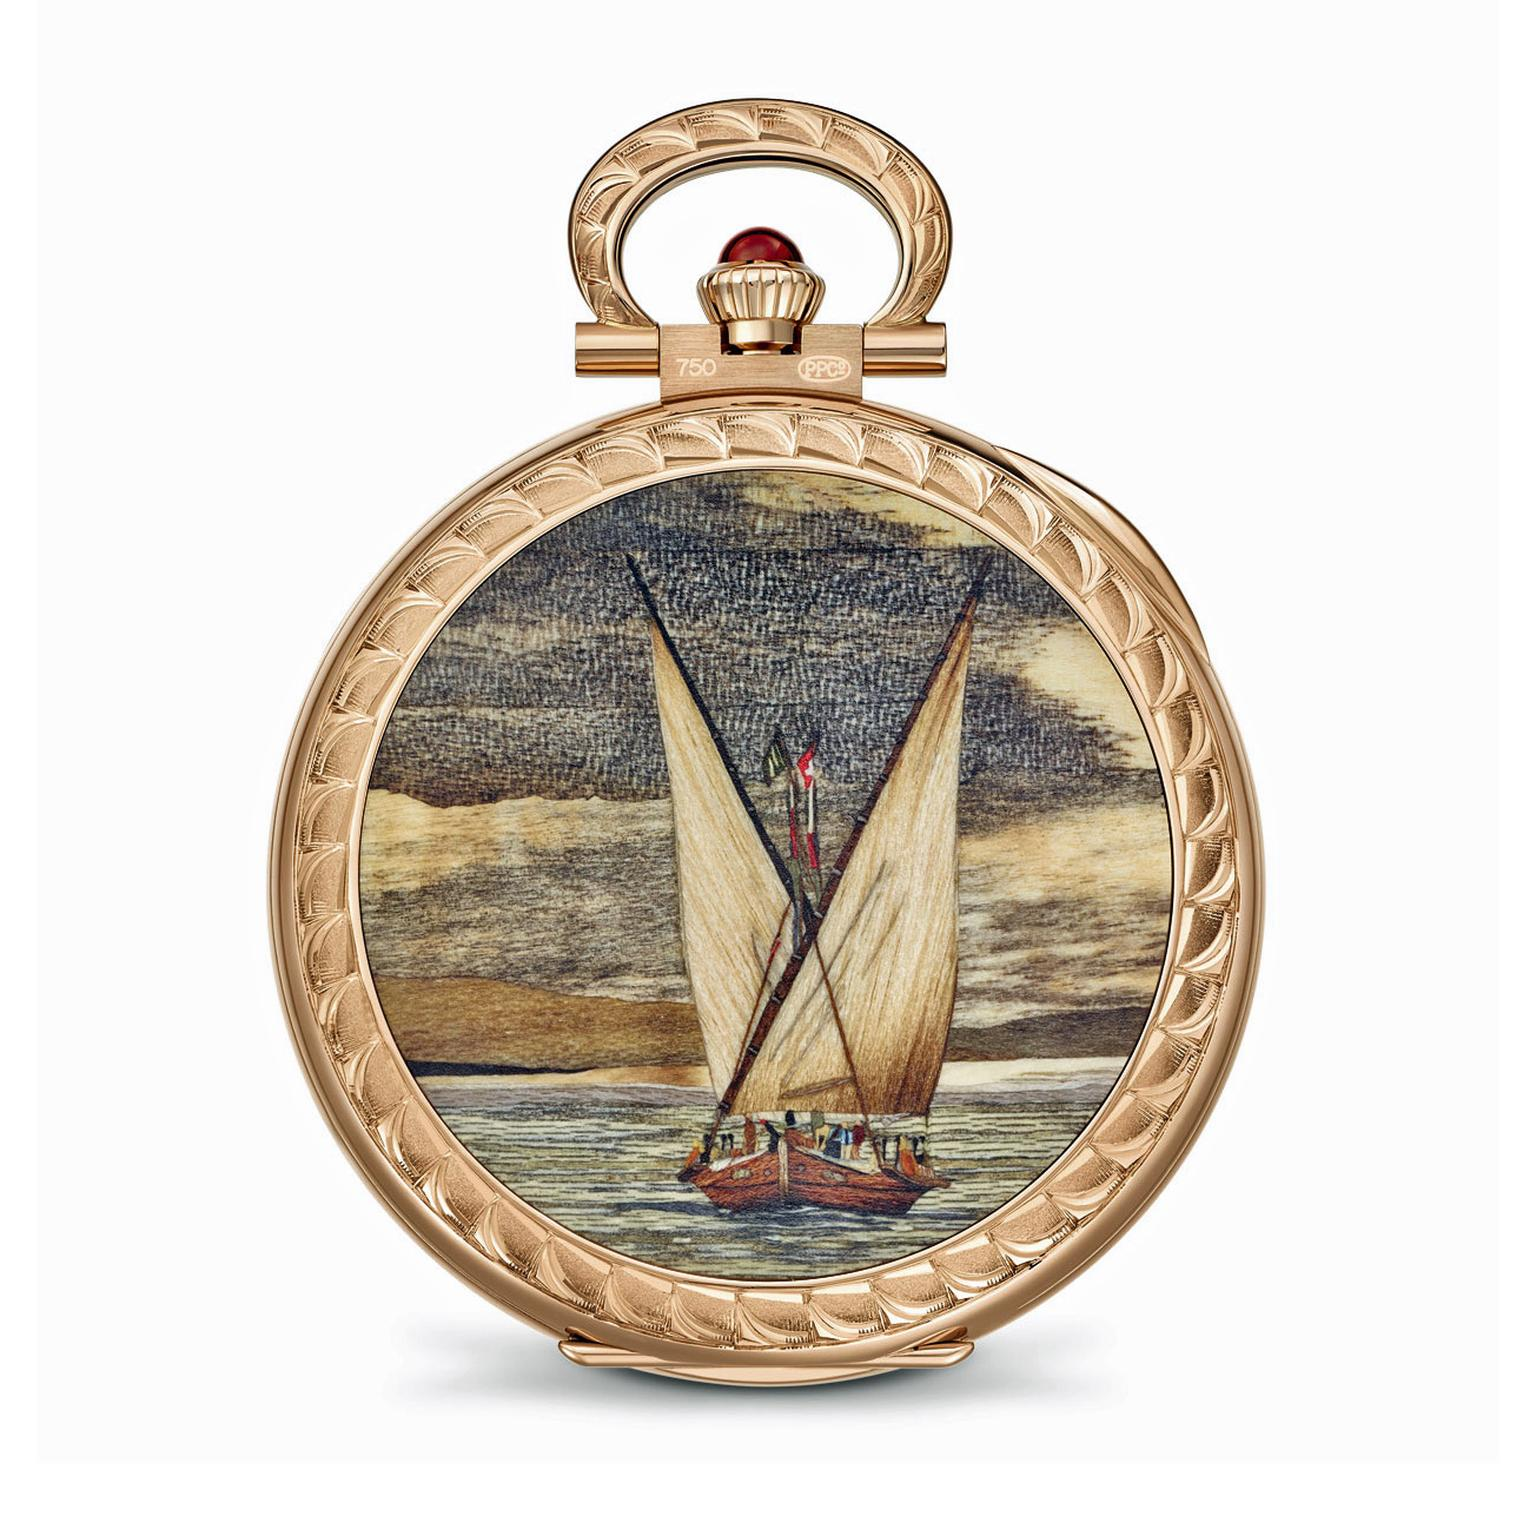 Patek Philippe Lateen Sails marquetry and hand engraving